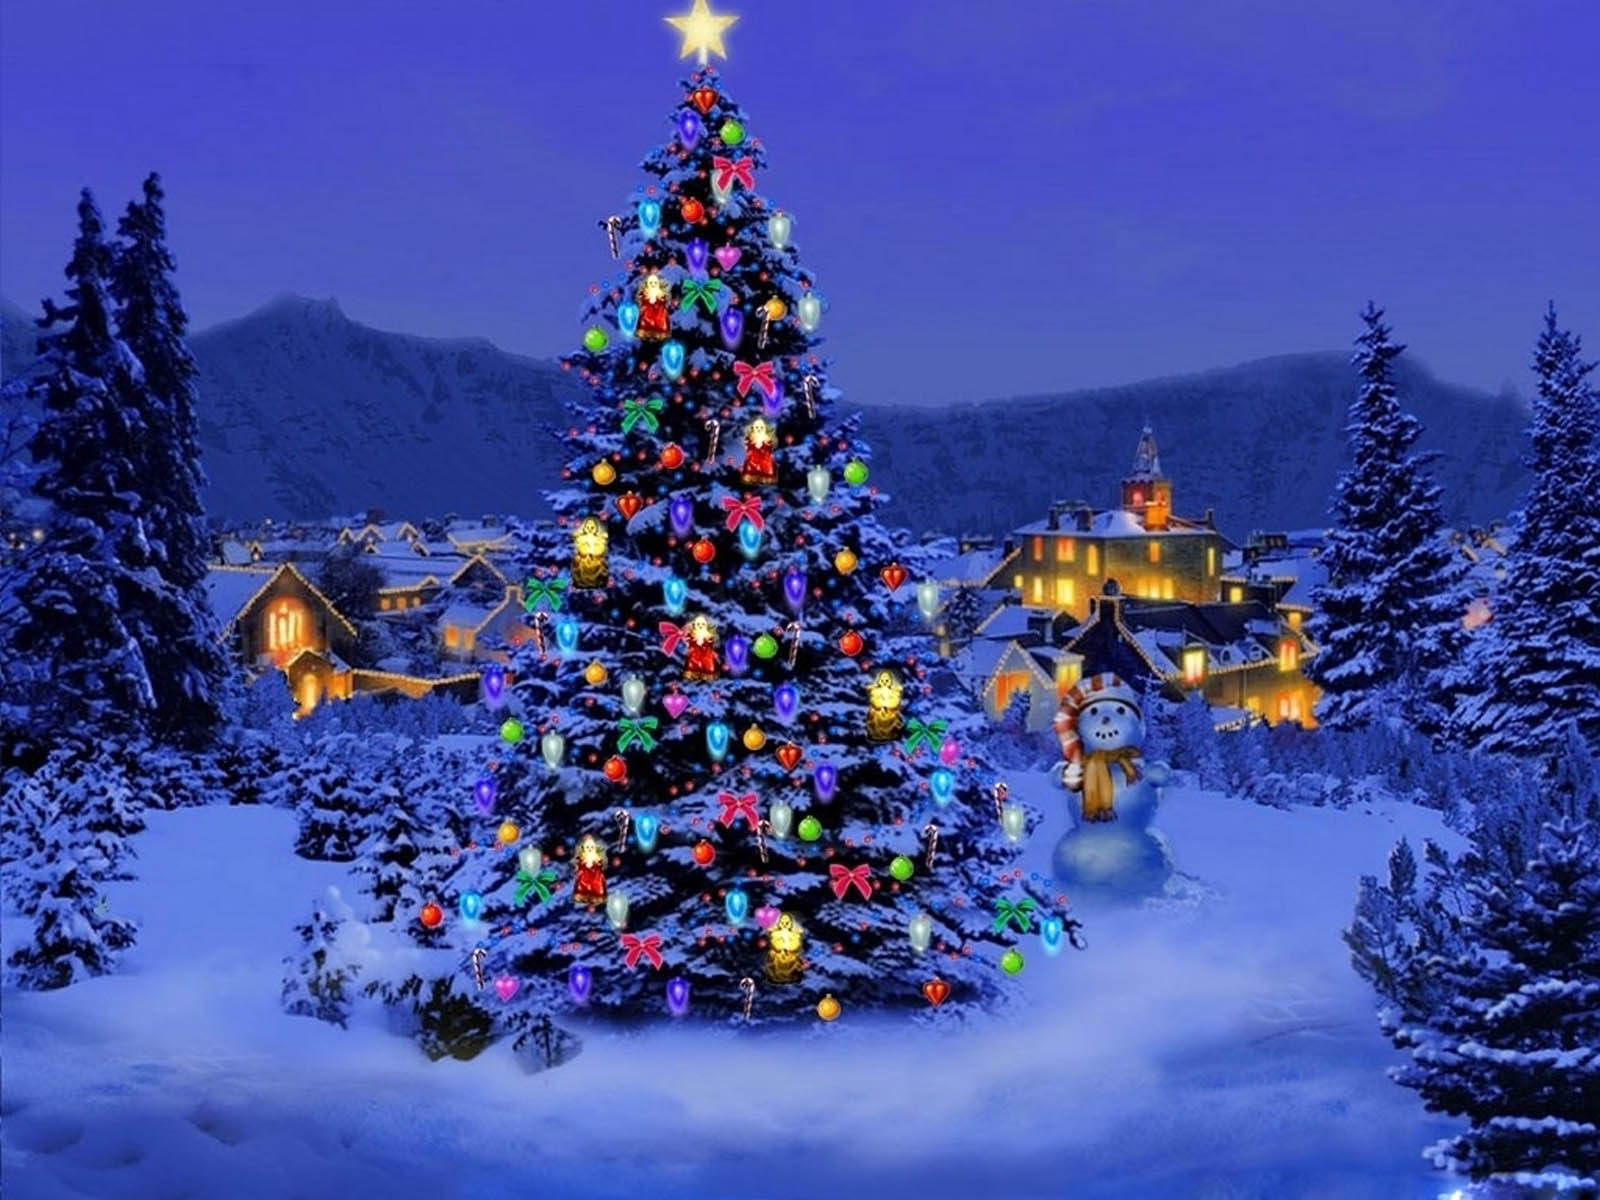 Wallpapers christmas tree decoration for Christmas decorations images